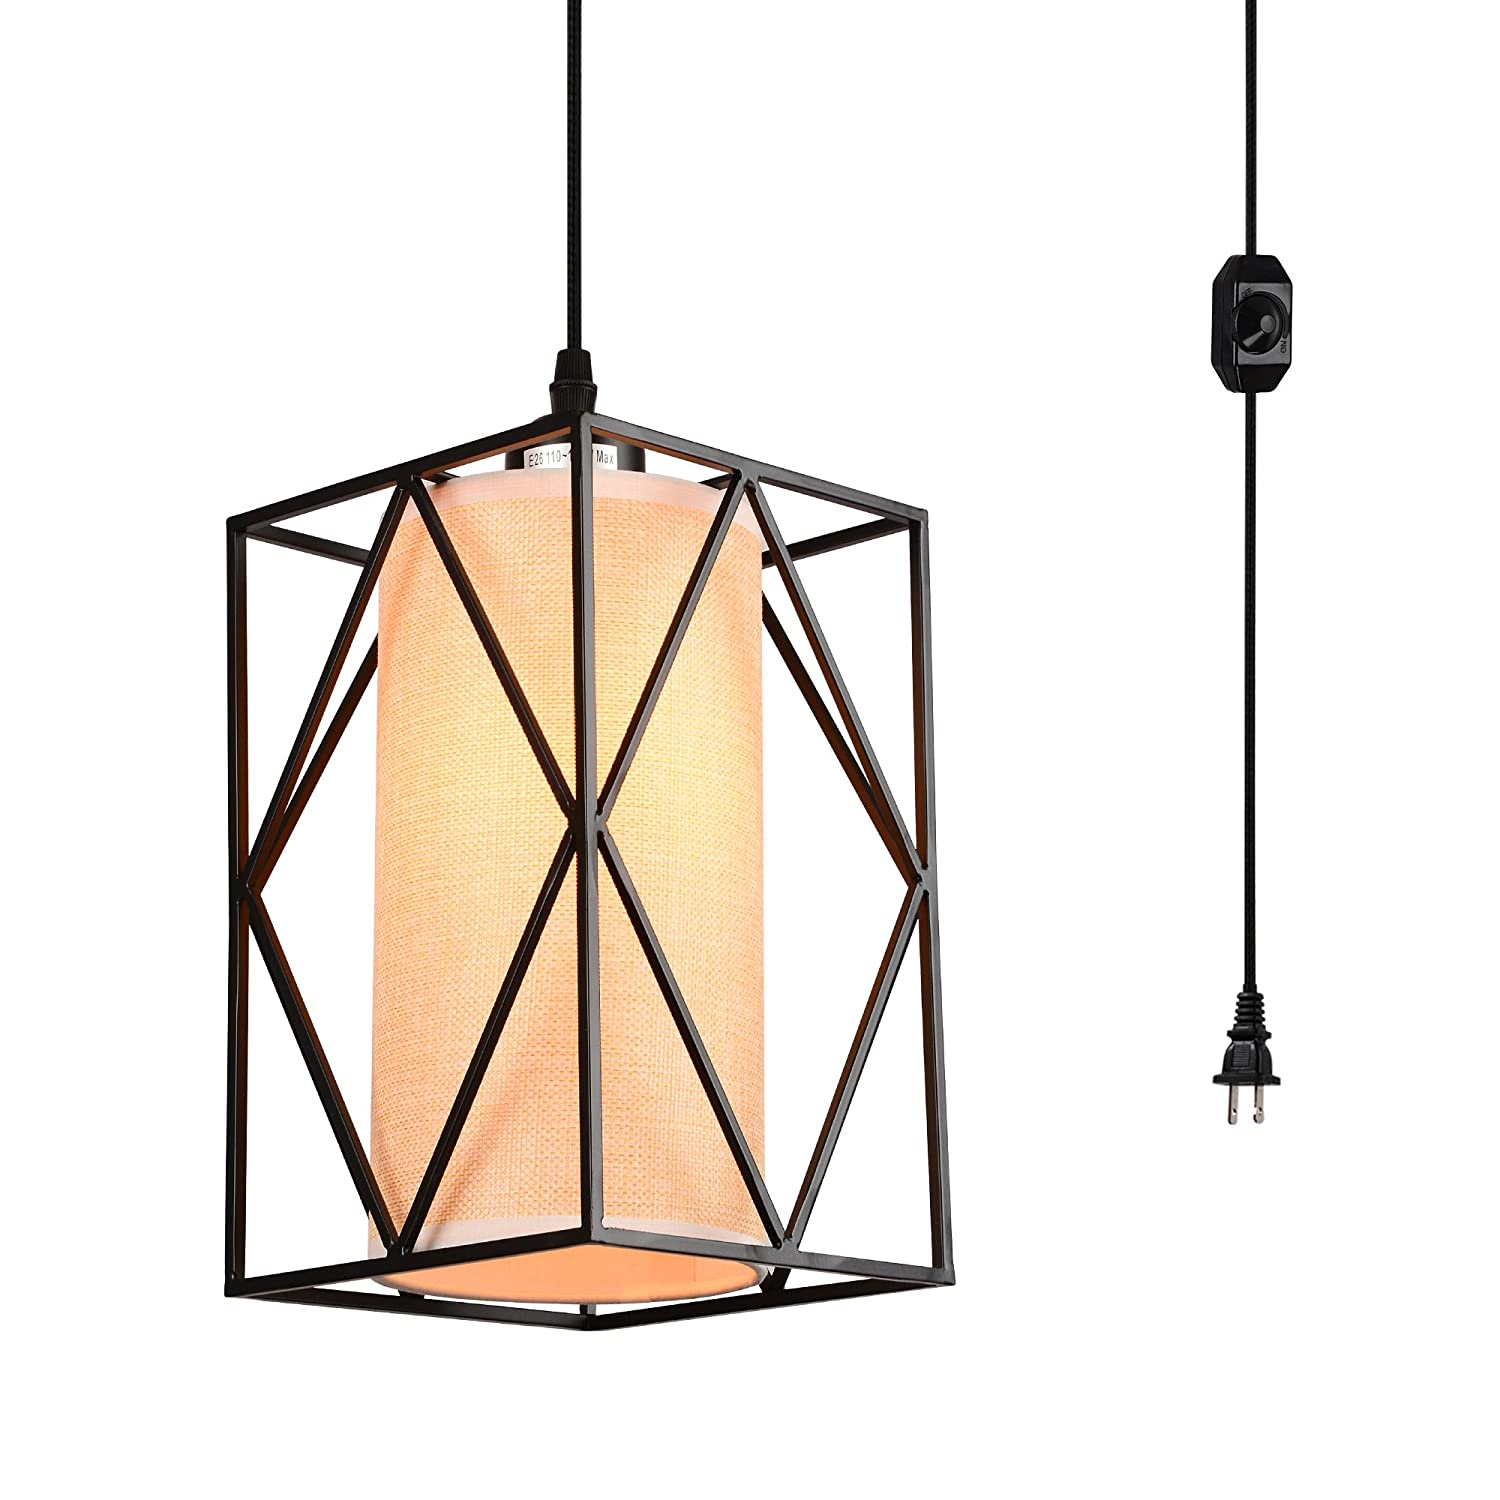 HMVPL Swag Pendant Lights with Plug in Cord and On/Off Dimmer Switch, New Transitional Hanging Ceiling Lamps with Linen Lampshade for Kitchen Island, Dining Room, Living Room, Bed Room